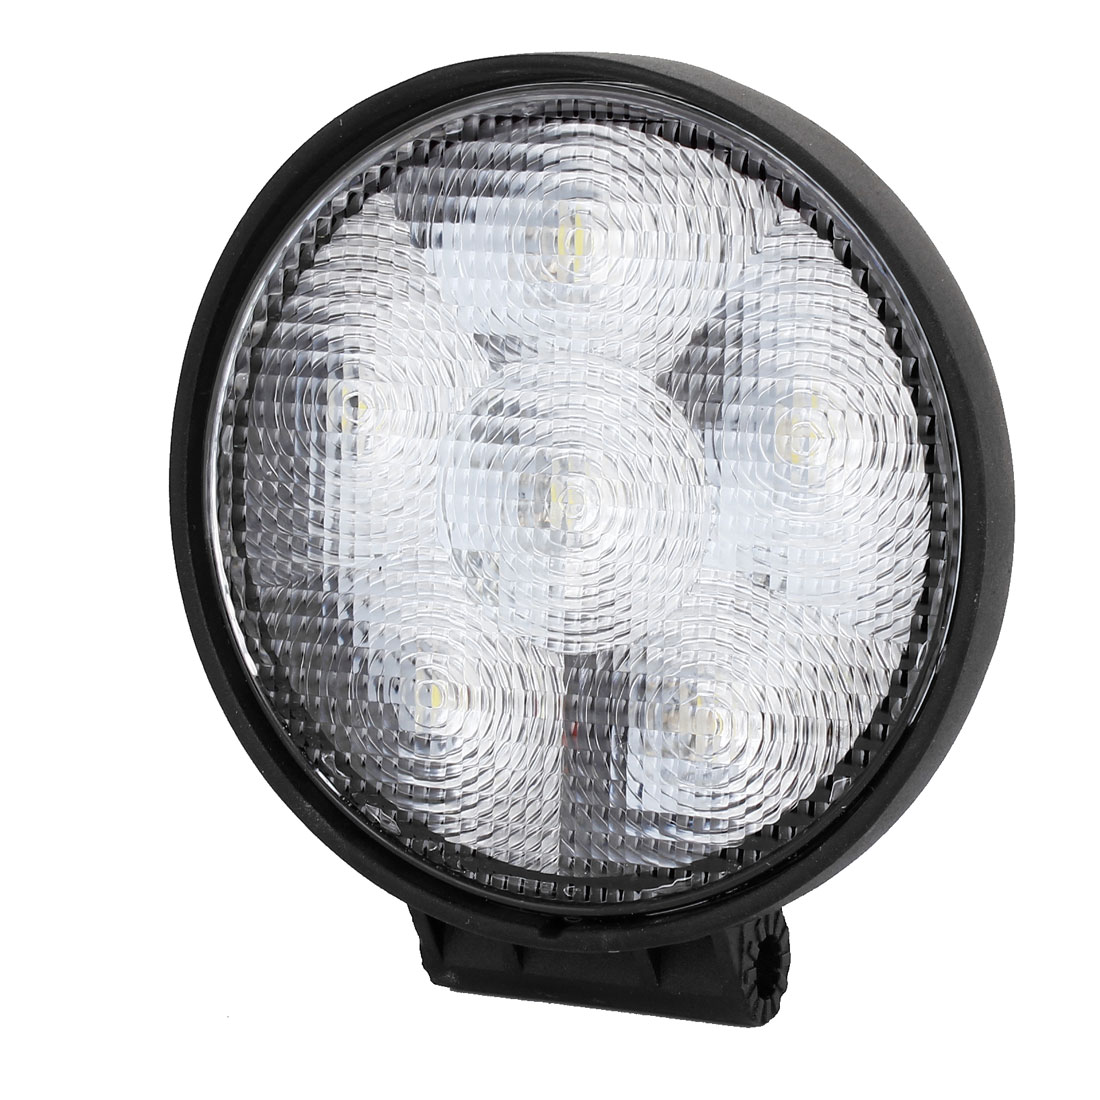 "4.6"" Dia Black Metal Round Shell 18W White 6 LED Flood Beam Work Light Driving Lamp Offroad SUV ATV"